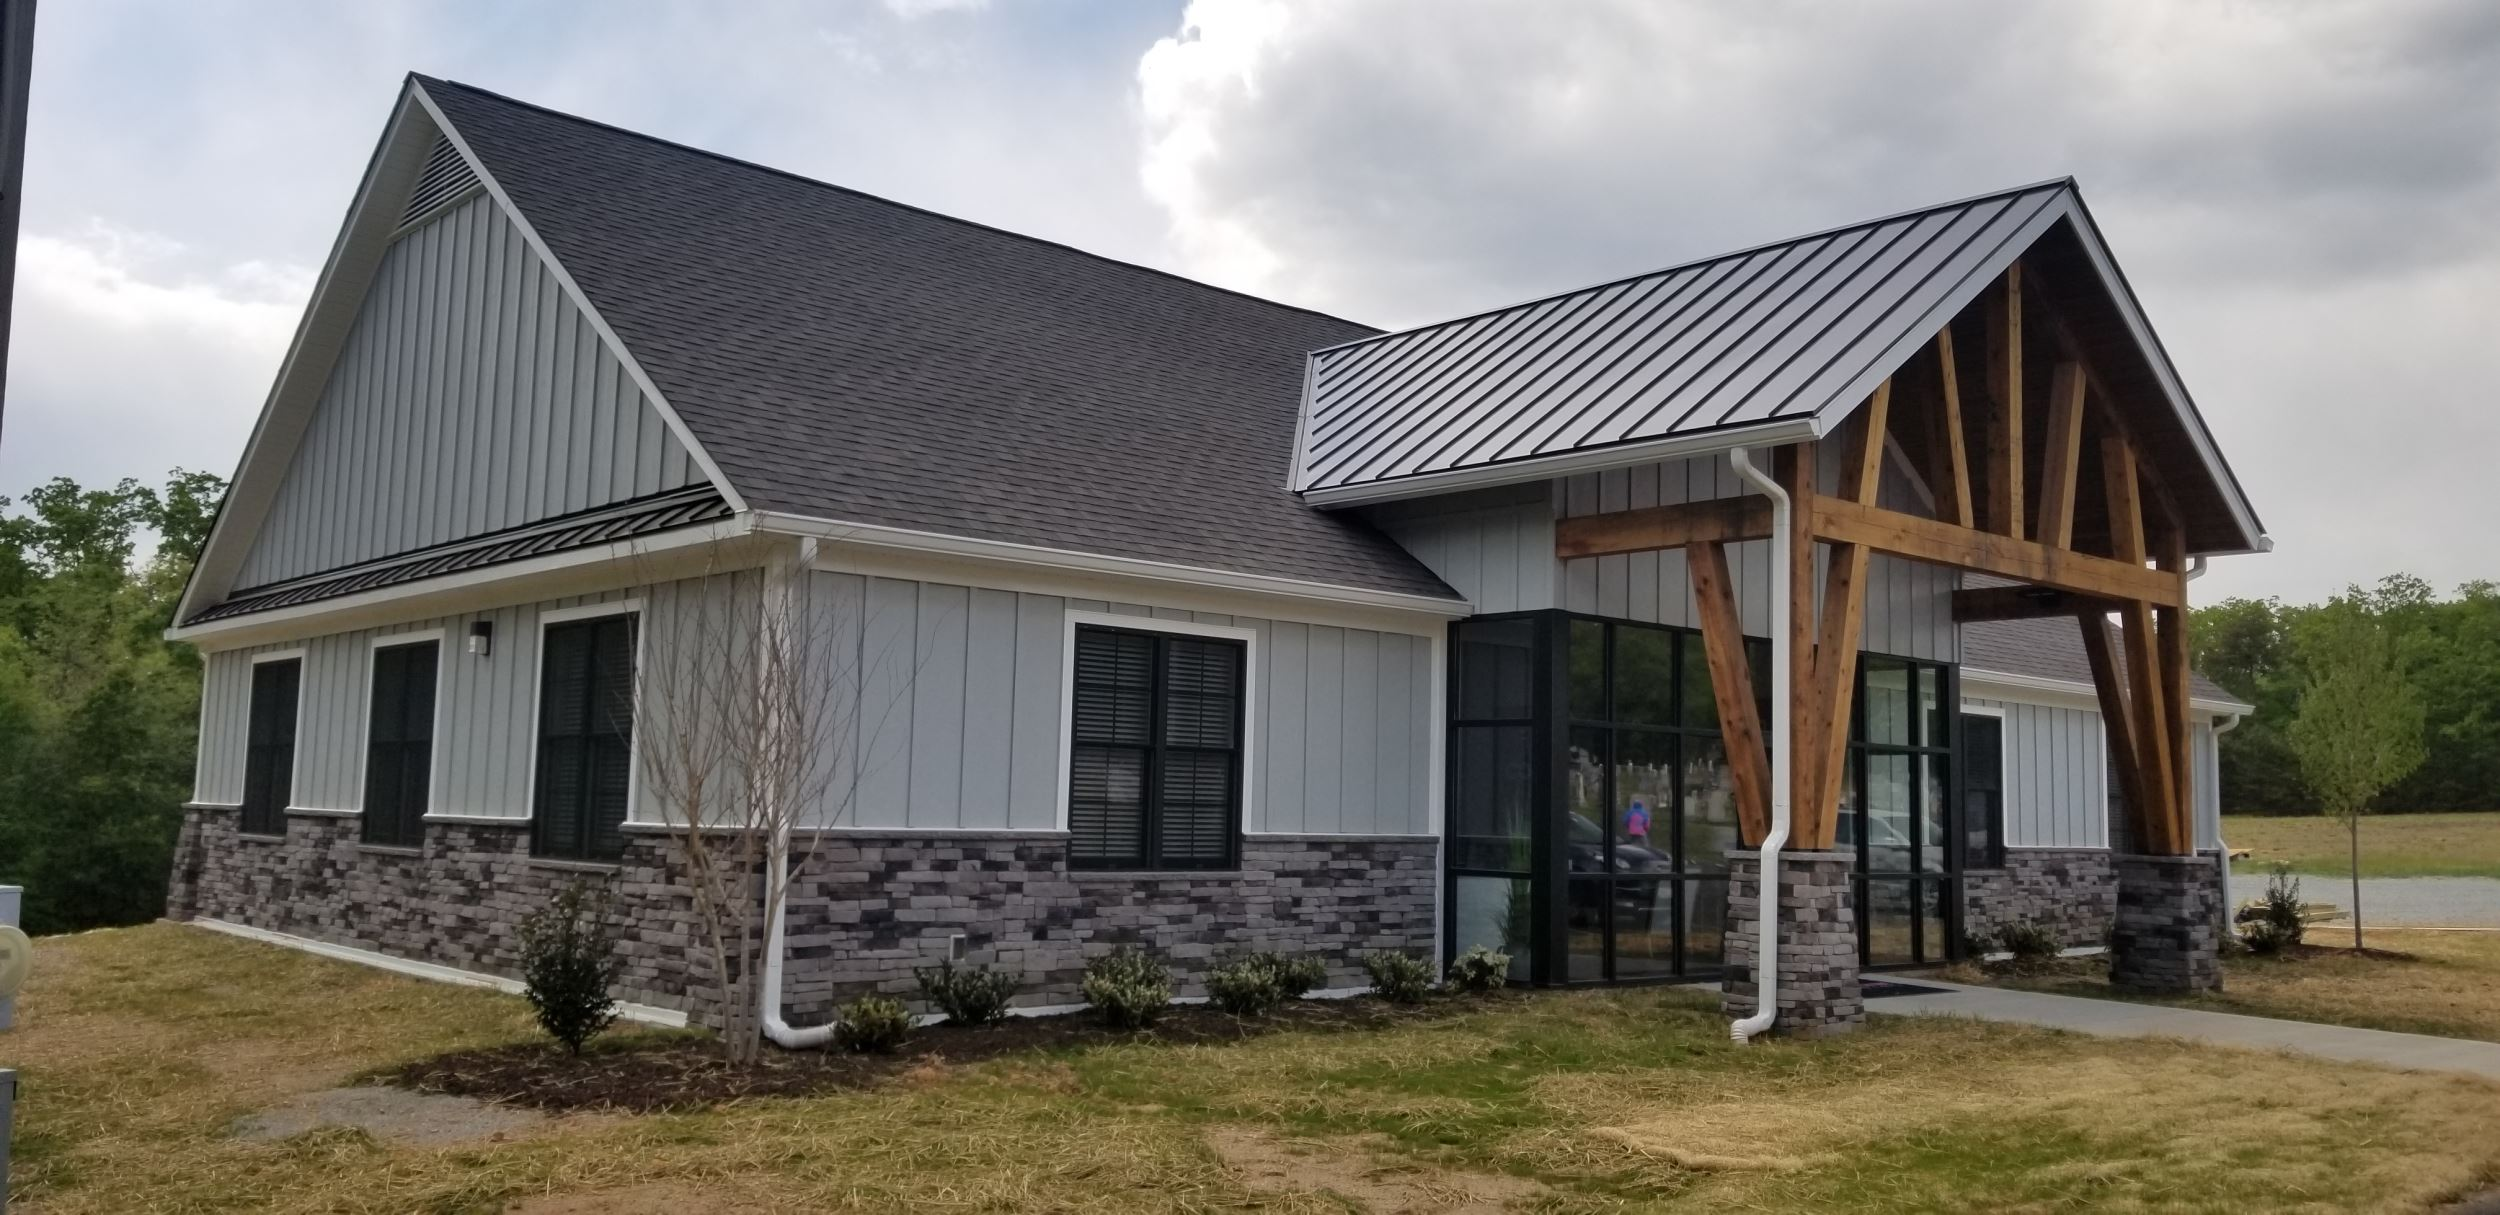 Architect Series Black Windows for Powhatan Church